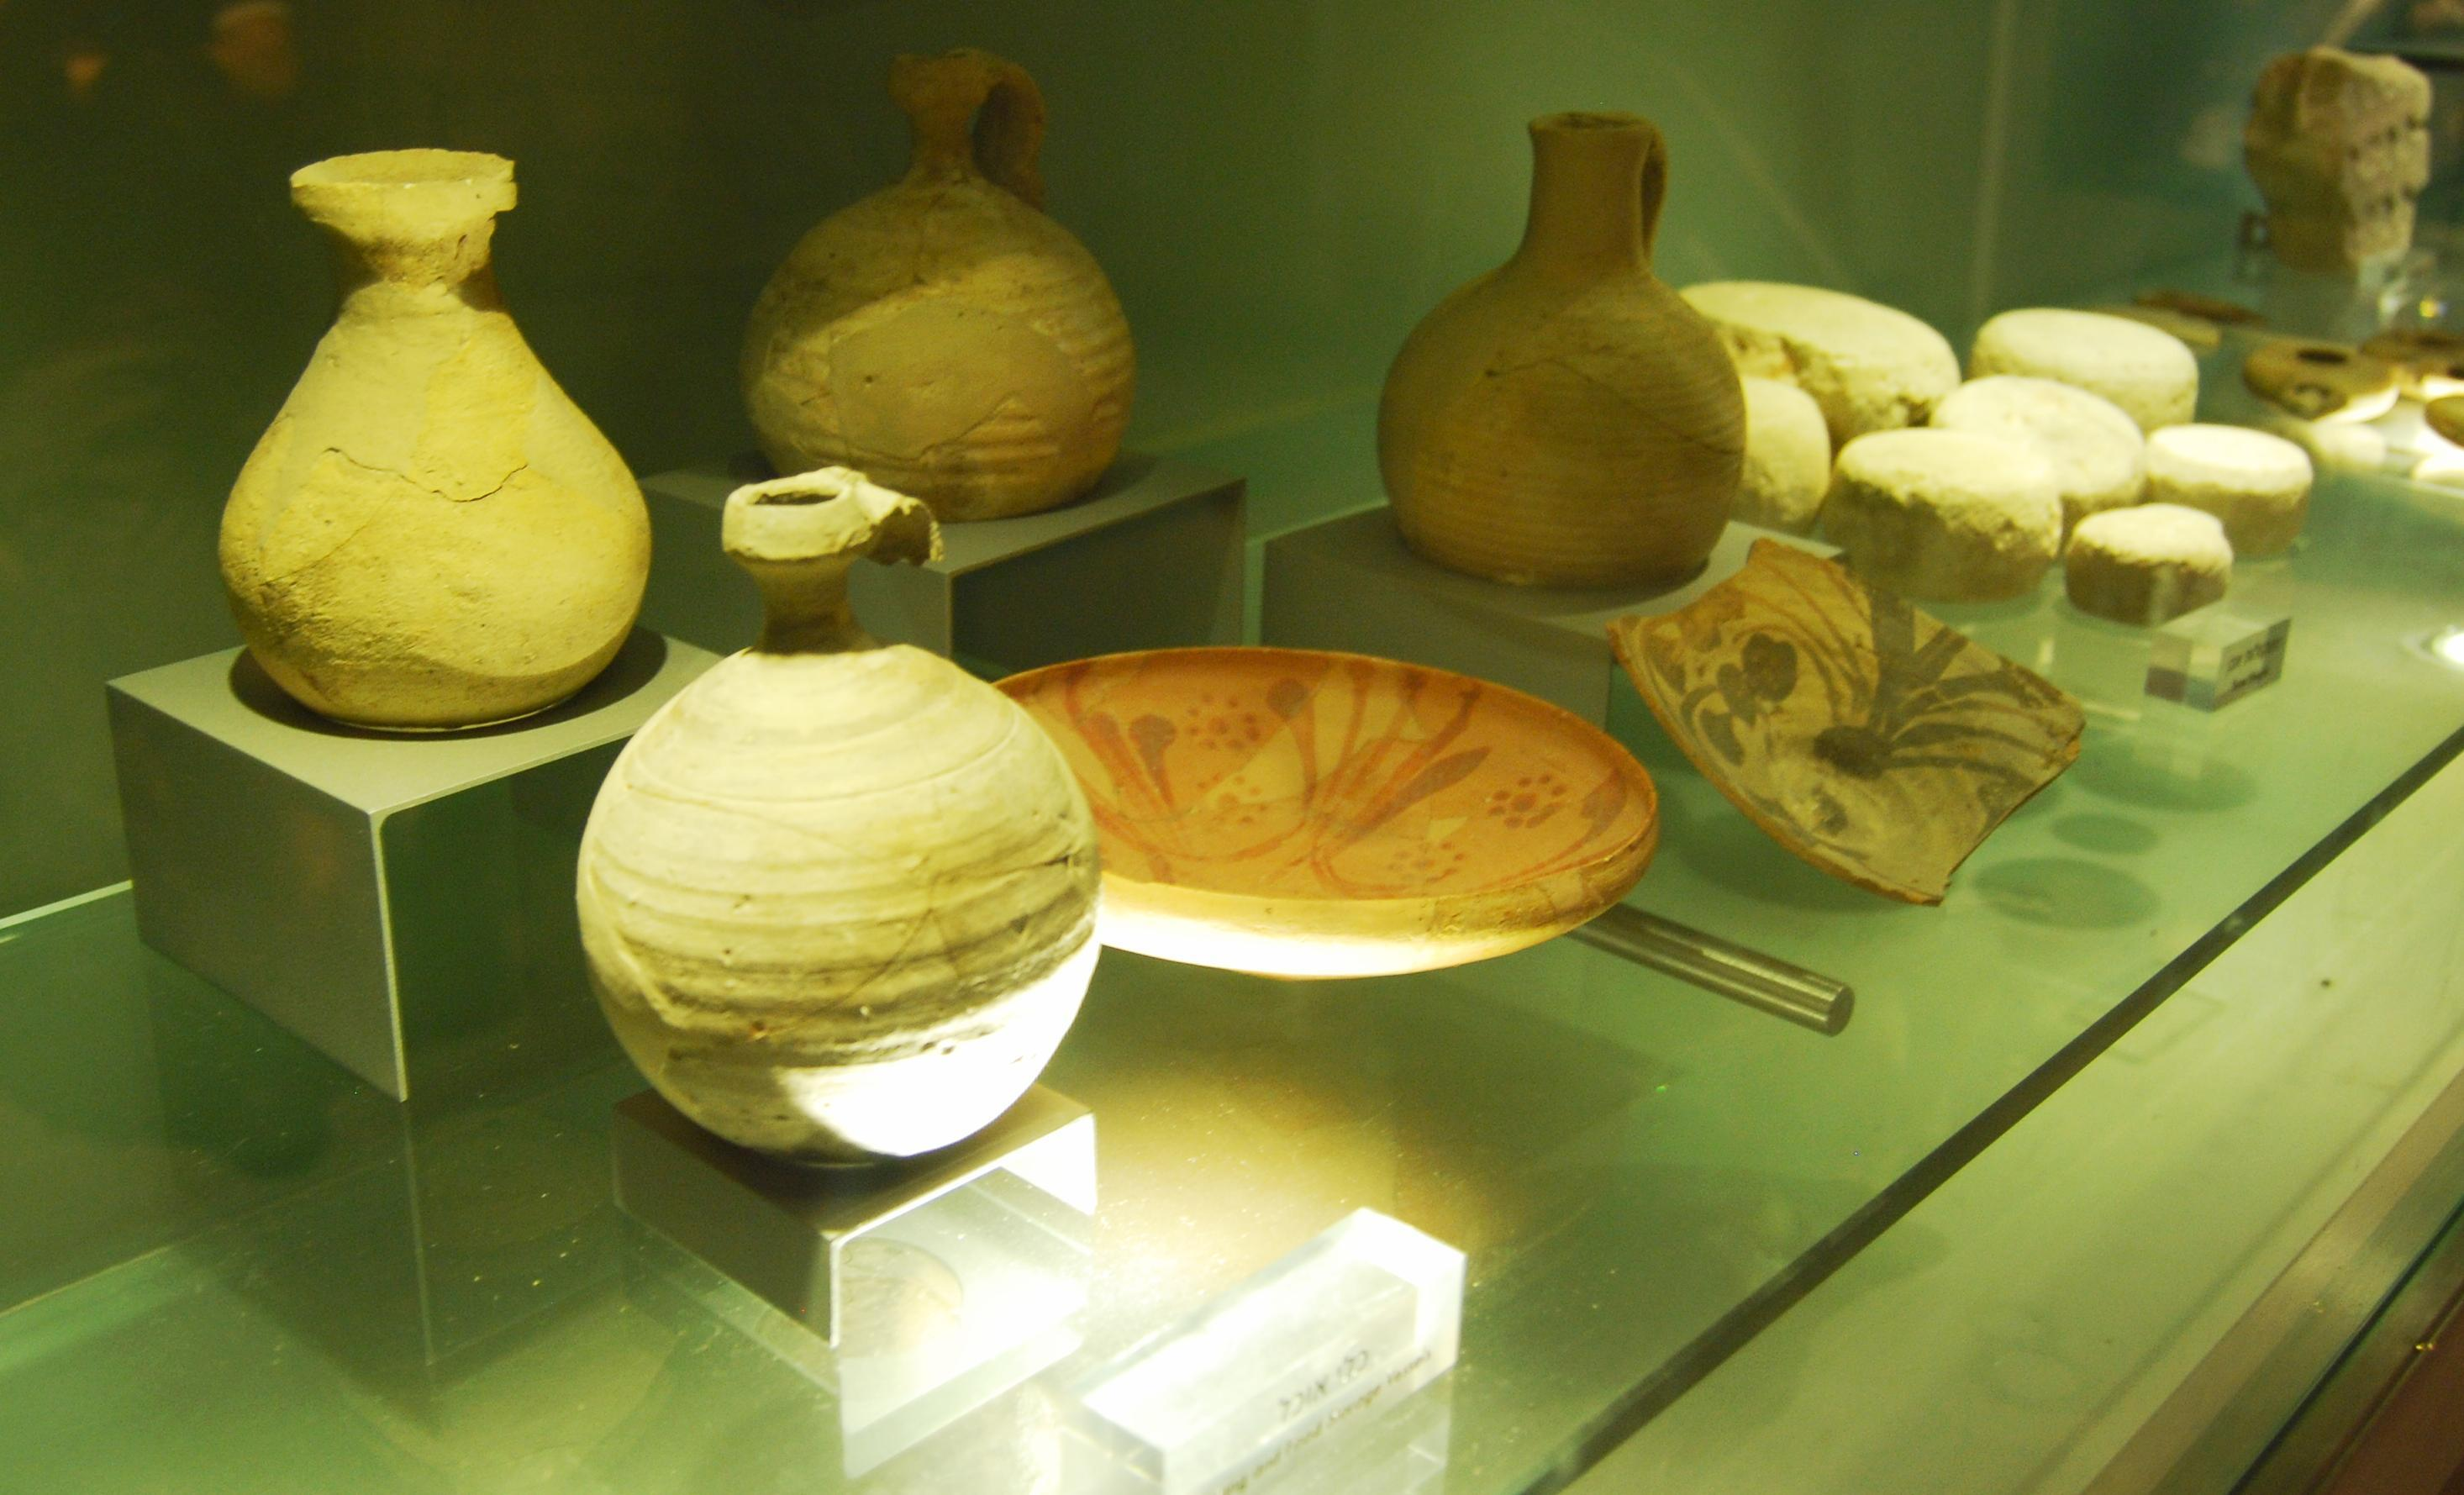 Roman kitchenware in the burnt house.